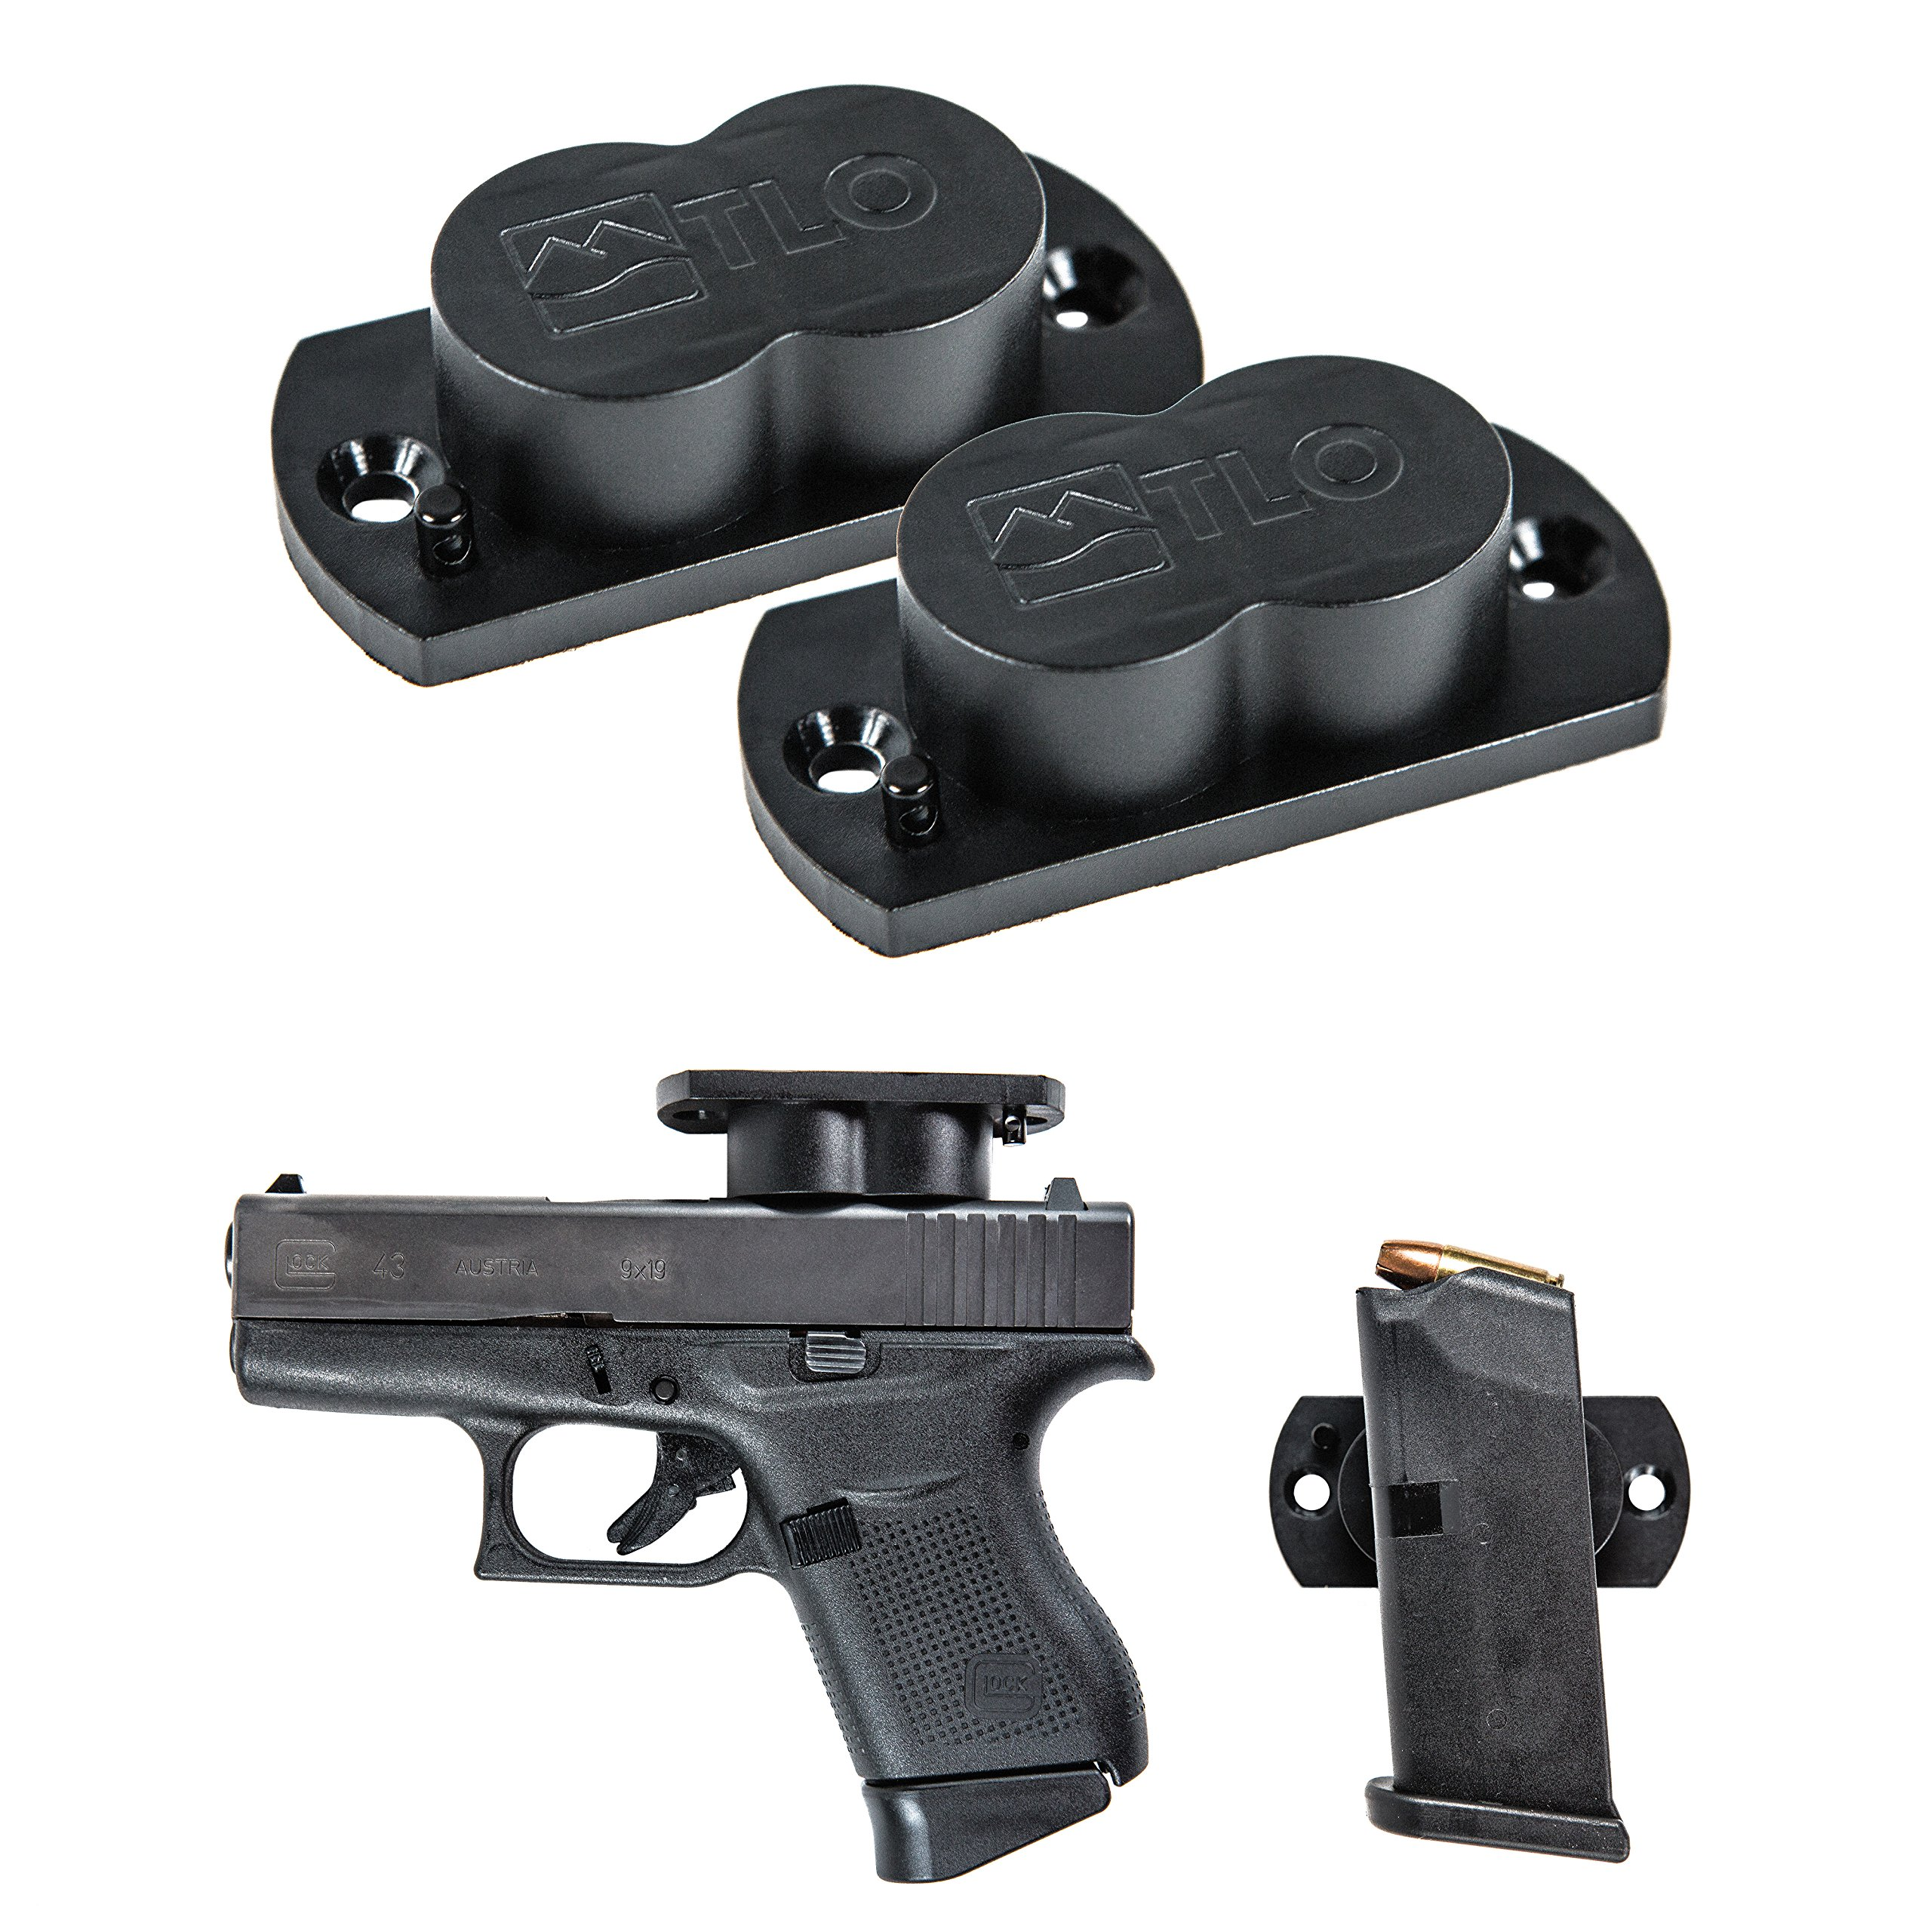 TLO Outdoors GunMag Gun Magnet [2-Pack] - Magnetic Gun Holster Mount for Car, Truck, Home, Office, Gun Safe with Exclusive Safety Cylinder